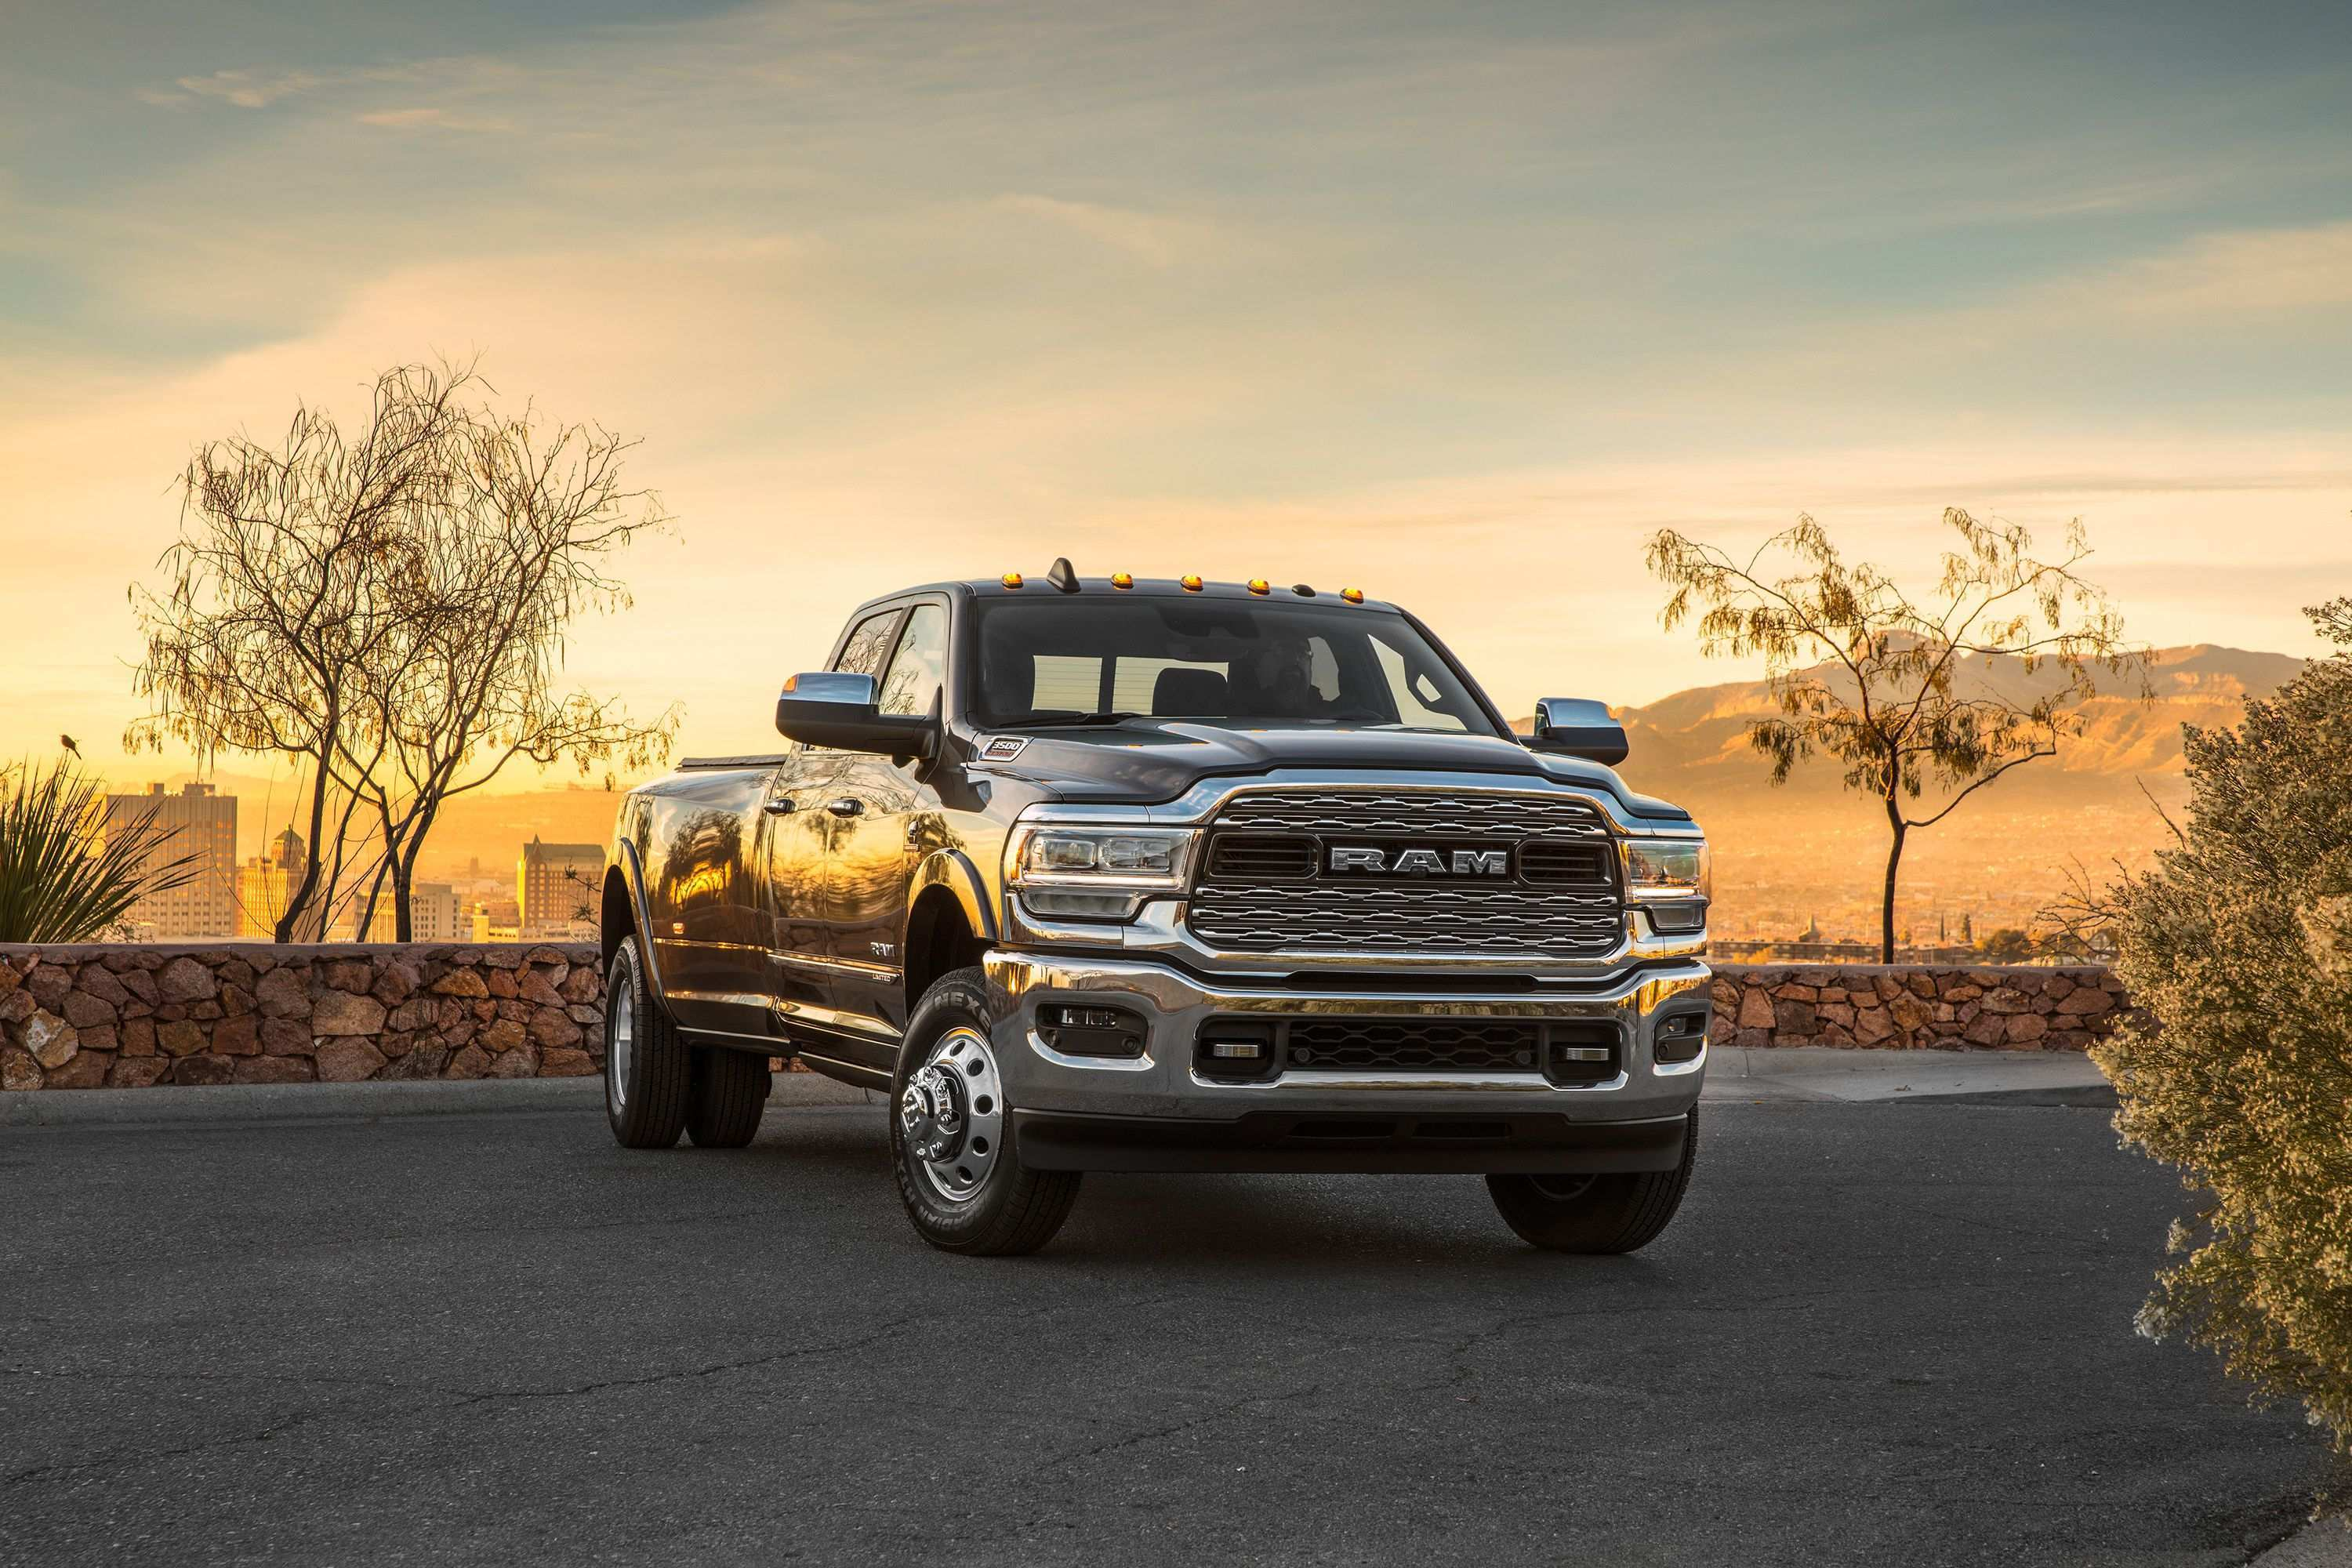 76 The Best 2020 Ram 3500 Concept And Review